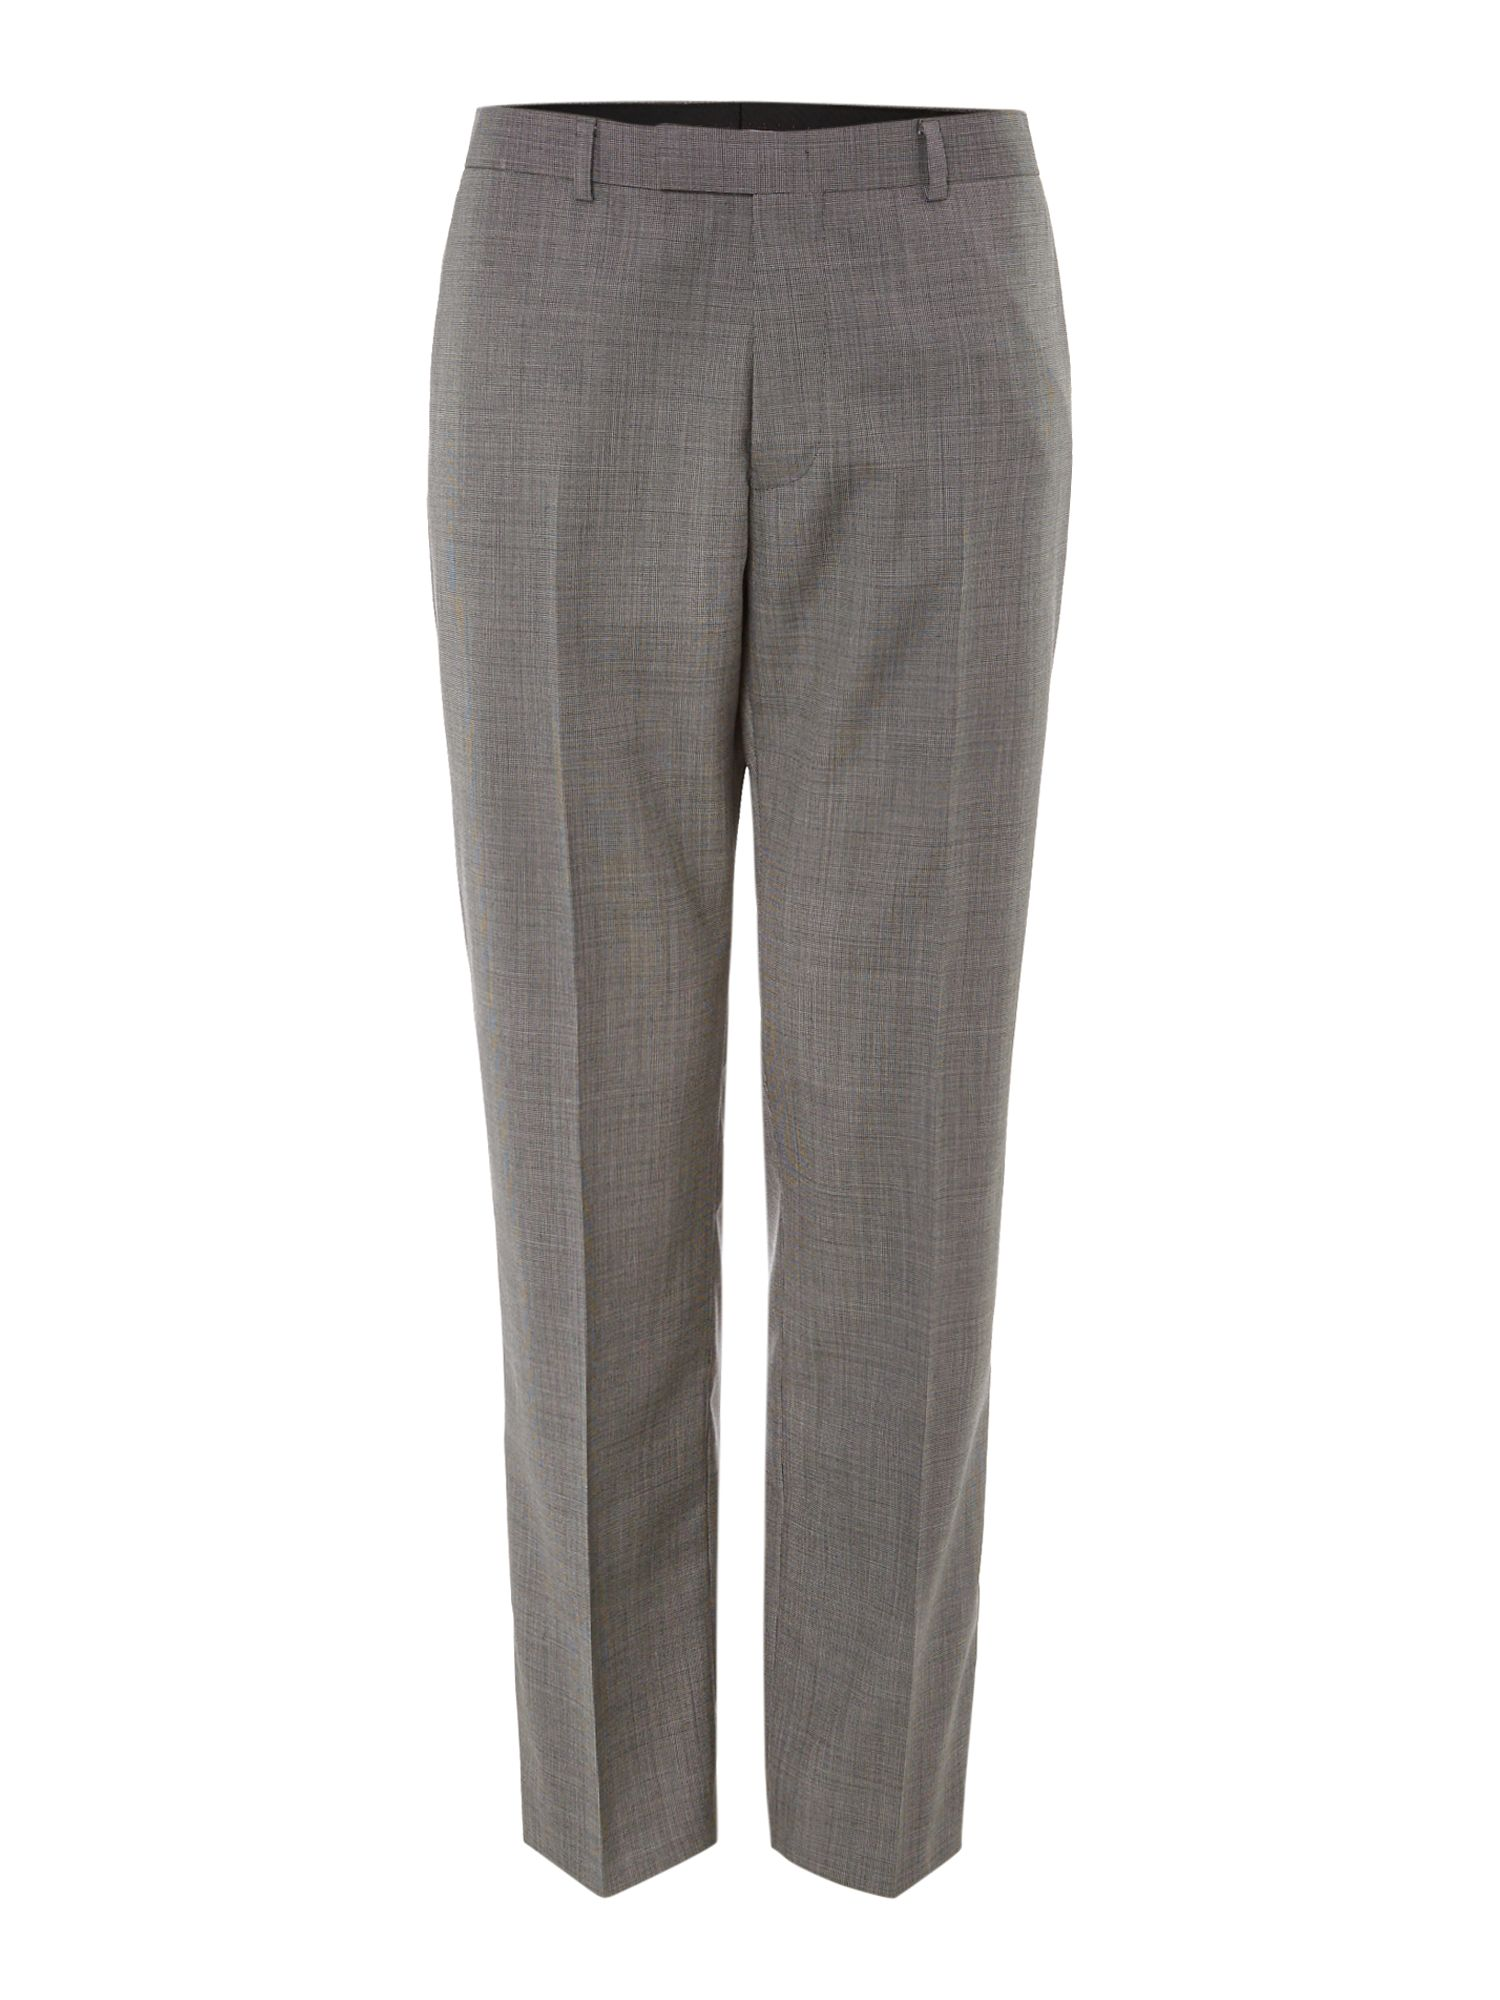 Berkely end on end suit trousers